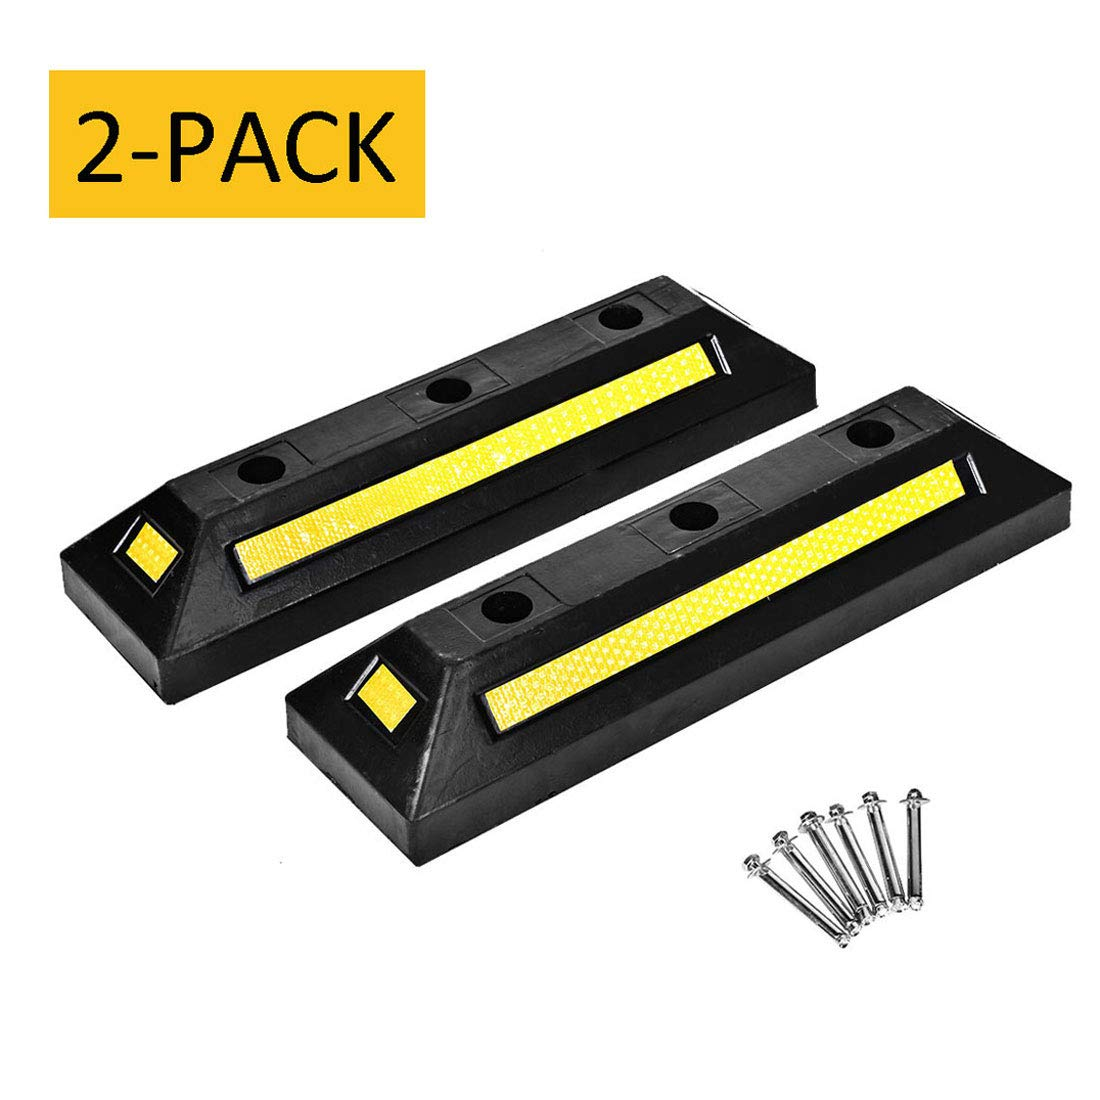 Cozylifeunion 2 Pack Heavy Duty Rubber Parking Block Curb Car Guide Garage Wheel Stop Stoppers with Yellow Reflective Stripes for Car, Truck, RV, Trailer, and Garage